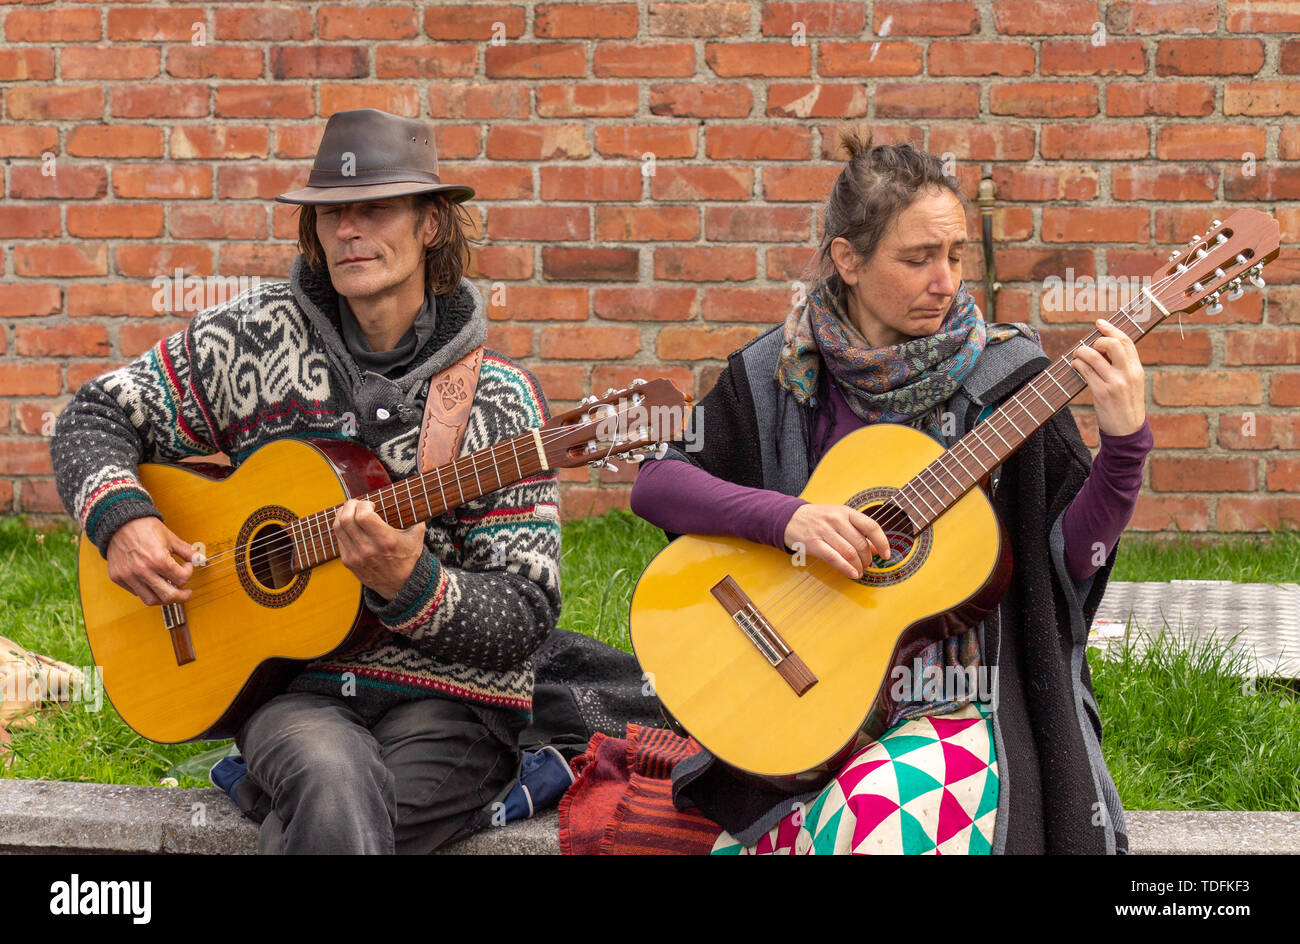 male-and-female-playing-acoustic-guitars-TDFKF3.jpg